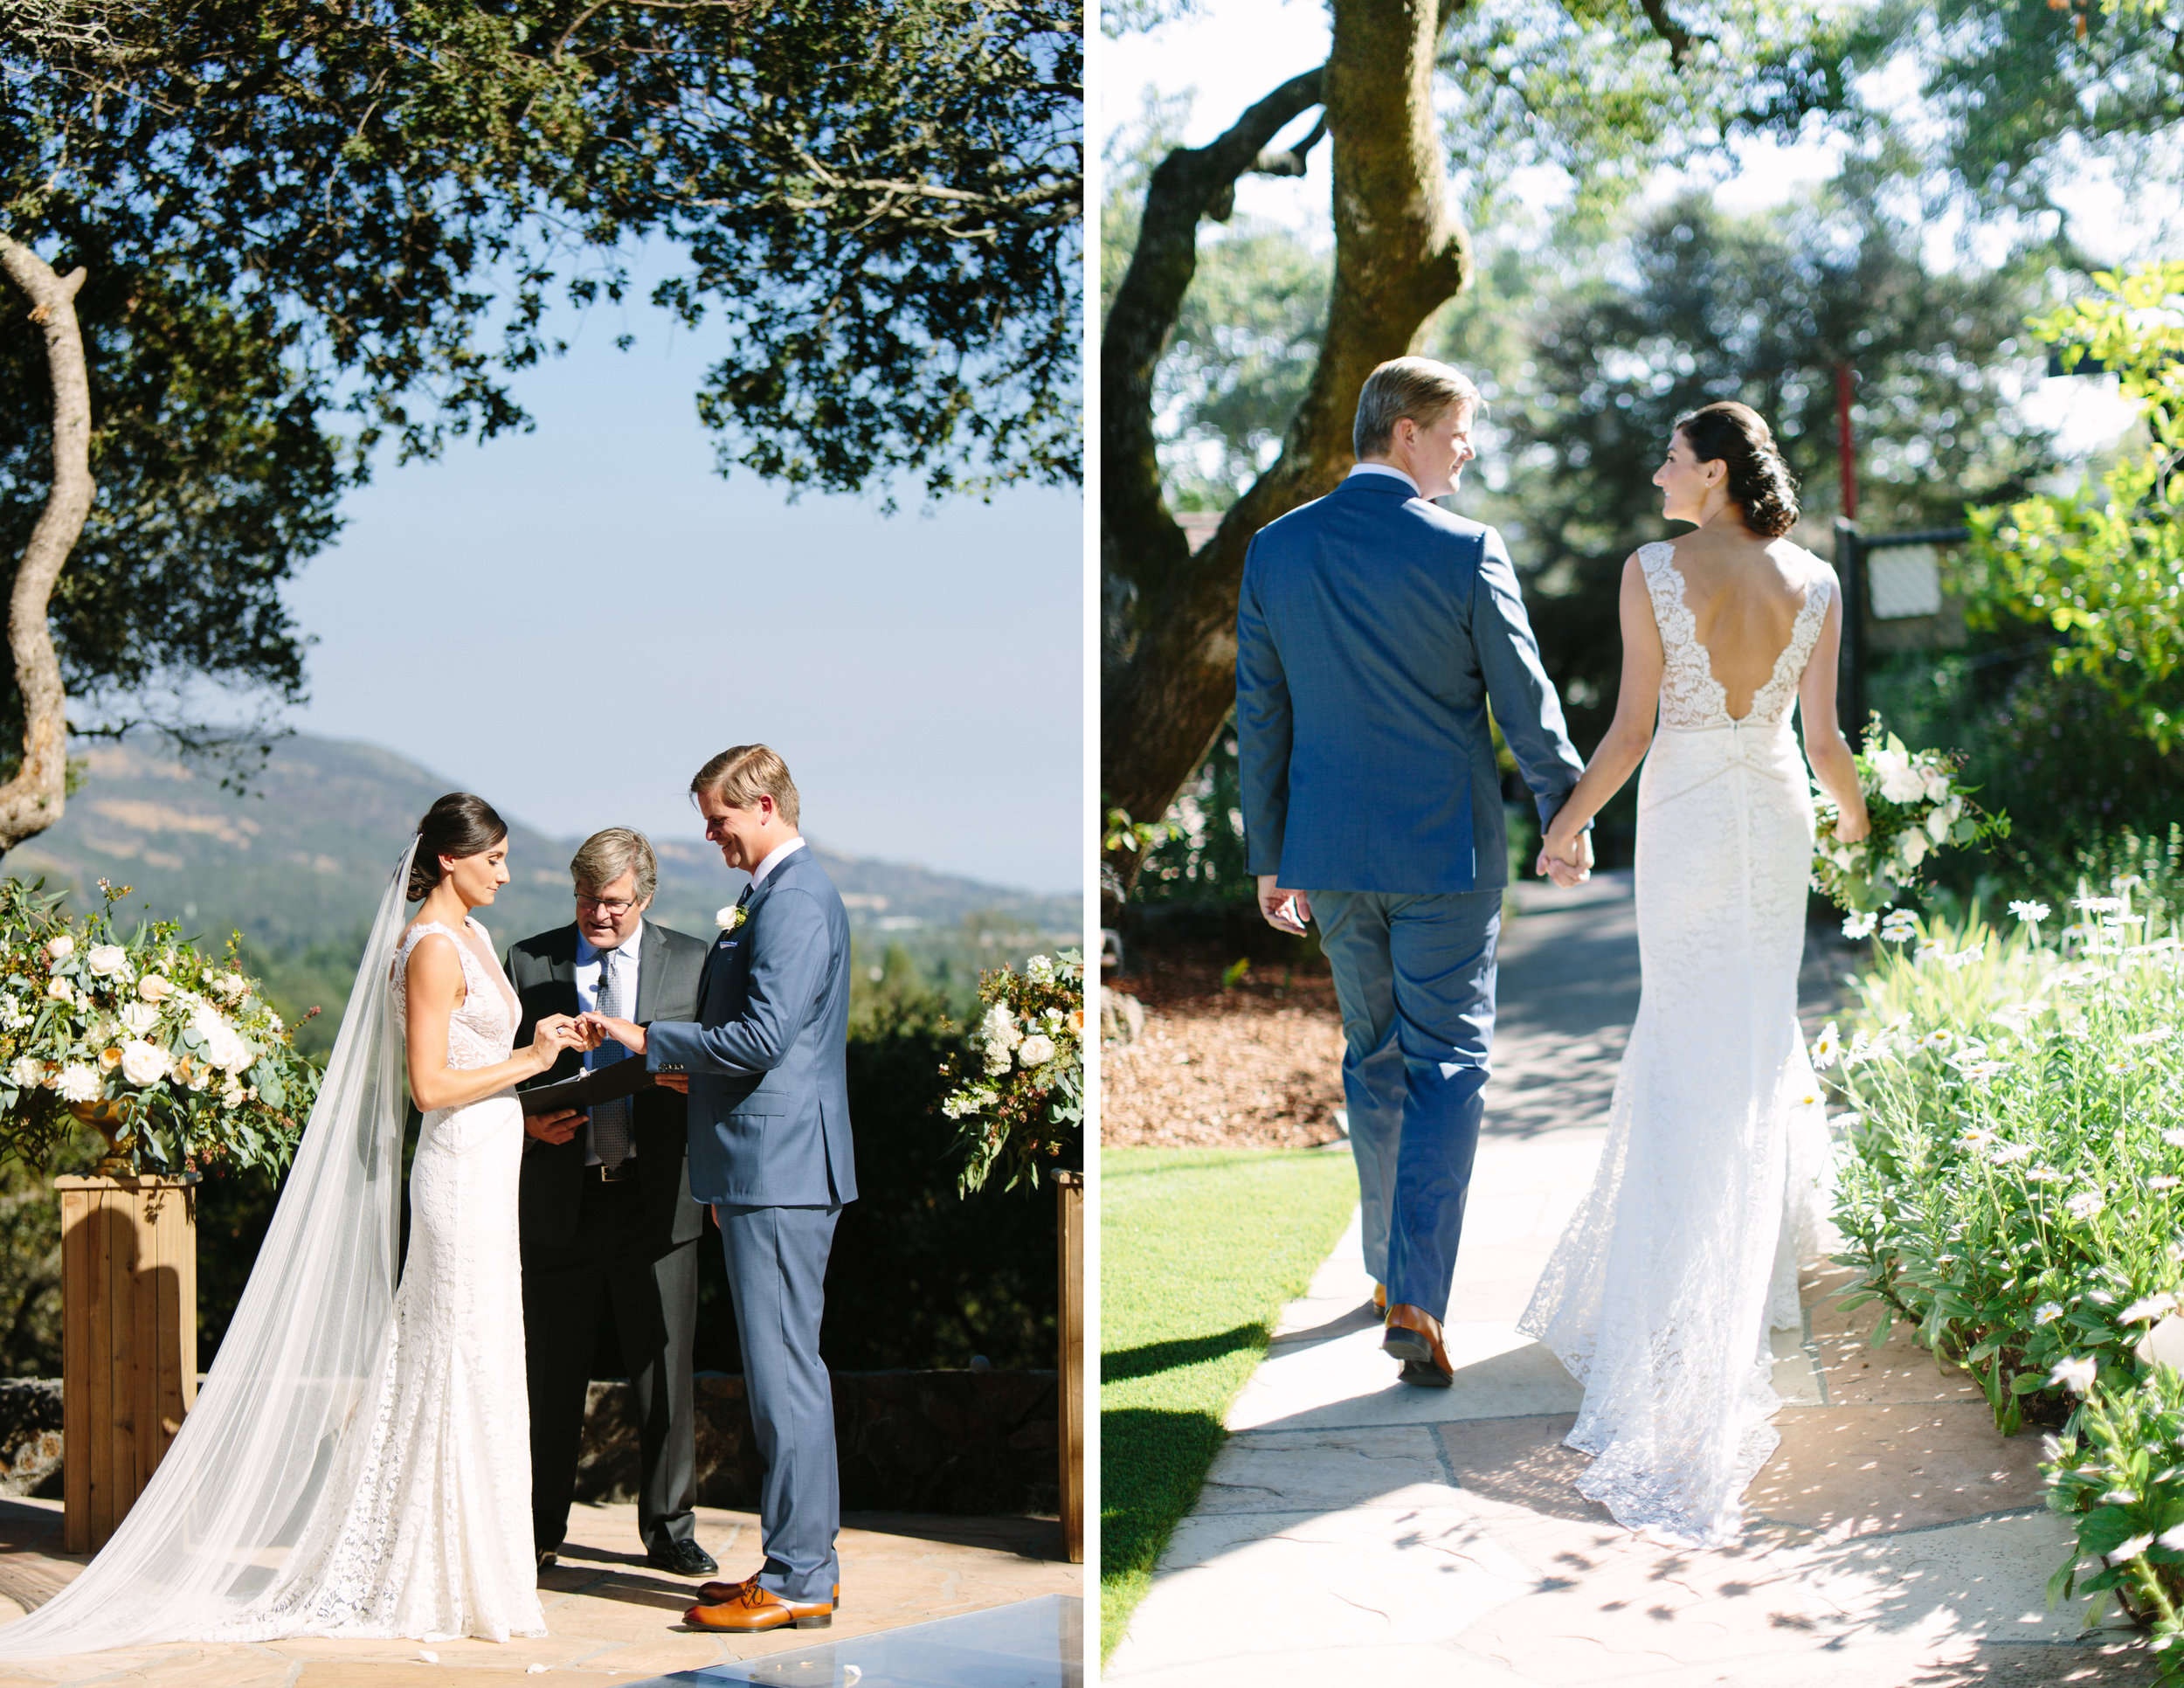 sonoma estate wedding 5.jpg